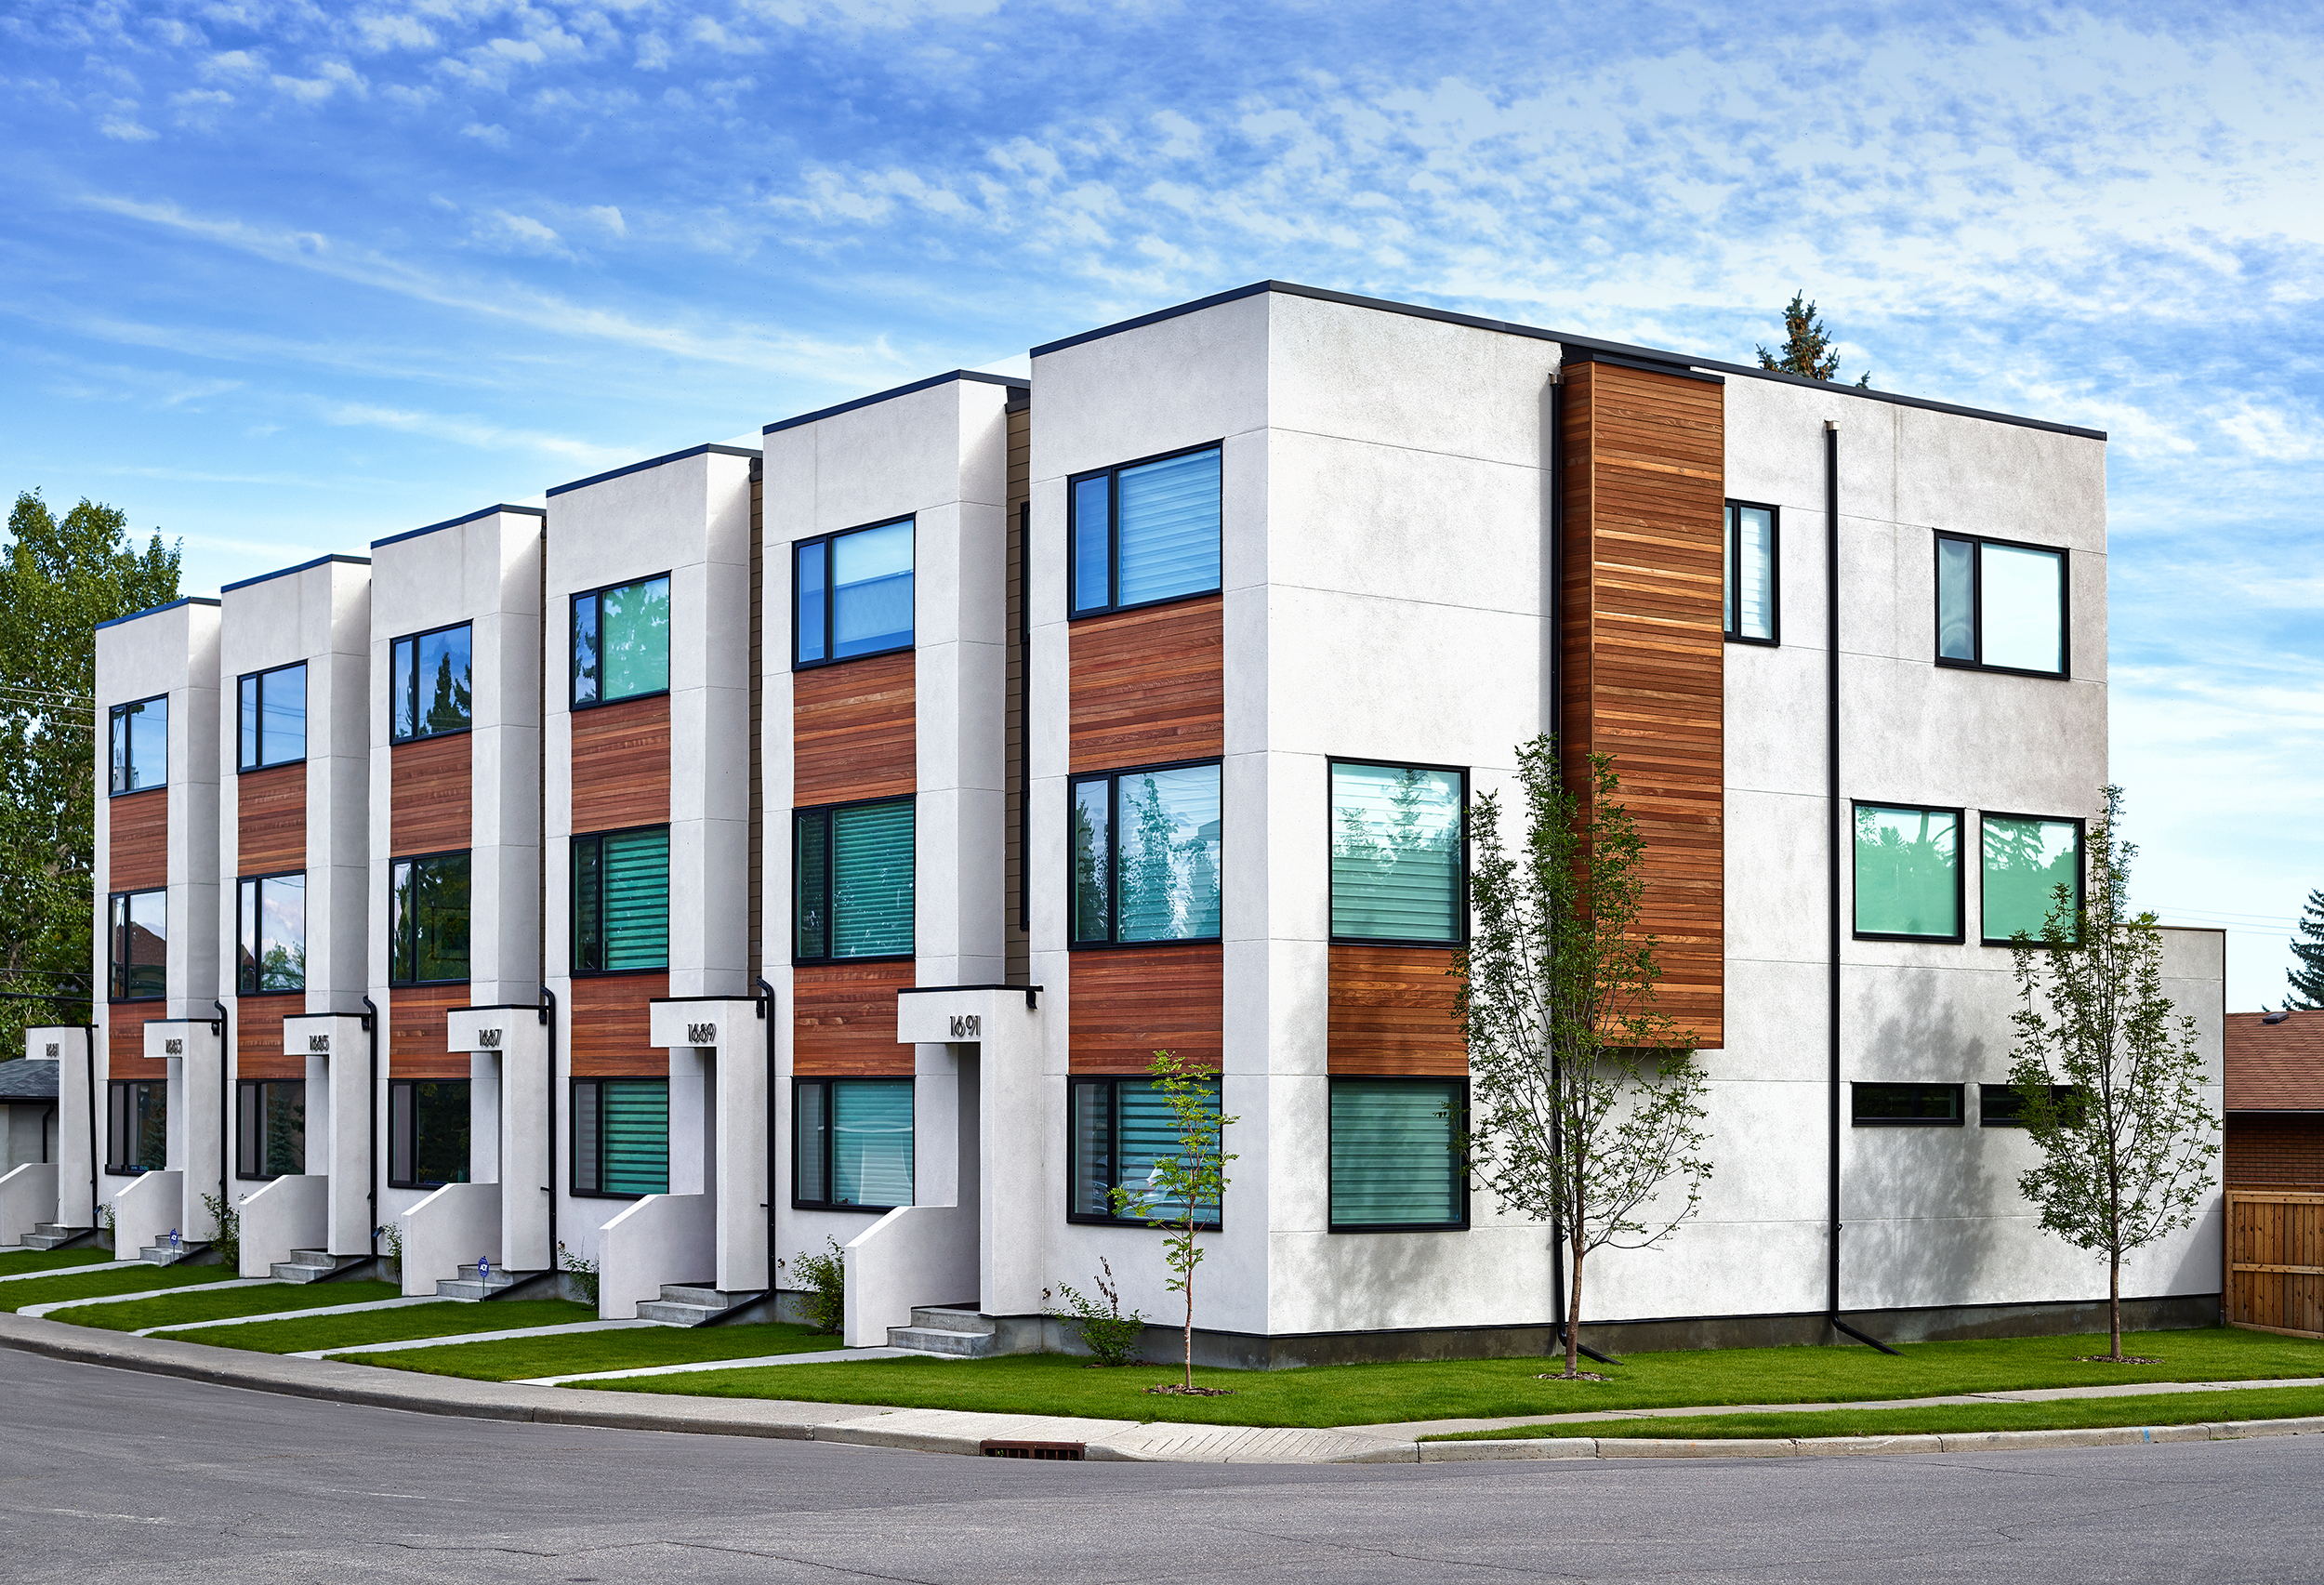 Parcside Townhomes Photo by Gary Campbell